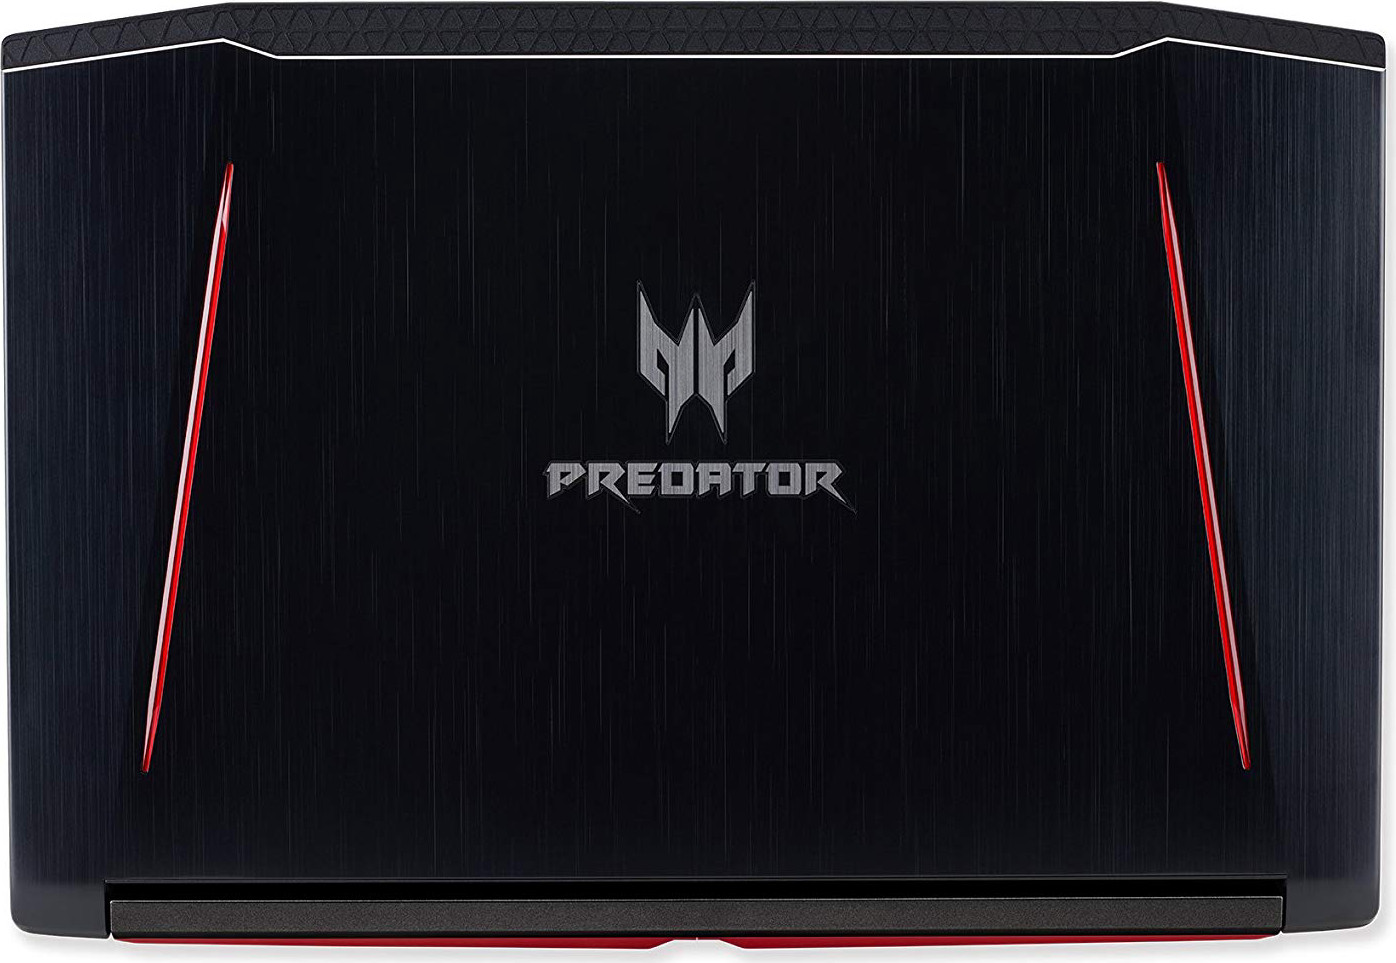 "Acer Predator Helios 300 Gaming Laptop, 15.6"" FHD IPS w/ 144Hz Refresh Rate, Intel 6-Core i7-8750H, Overclockable GeForce GTX 1060 6GB, 16GB DDR4, 256GB NVMe SSD, Aeroblade Metal Fans PH315-51-78NP"